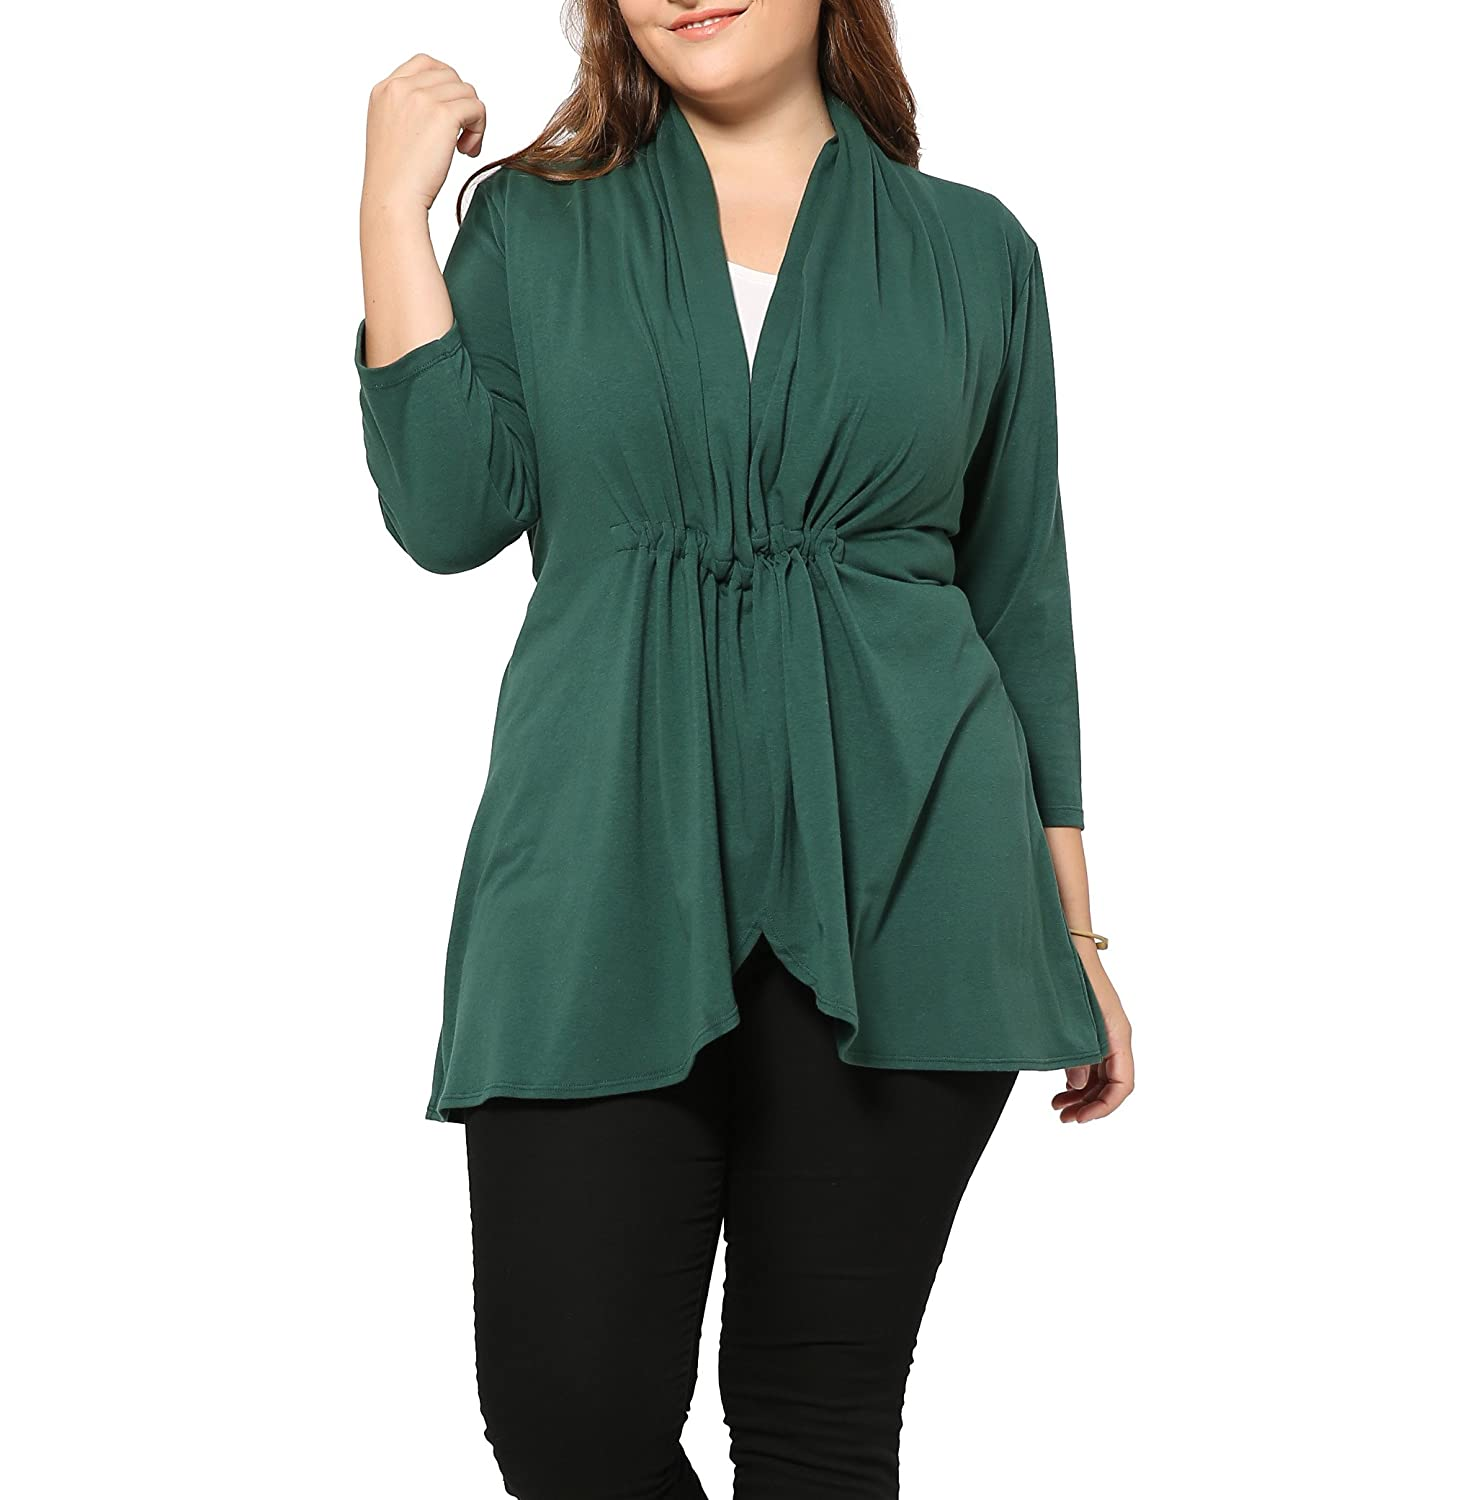 Plus Size 3/4 Sleeve Soft Knit Tops Cardigan Sweater For Women UK SIZE ( 14 16 18 20 22 24 26 28 30 32 34 36 )